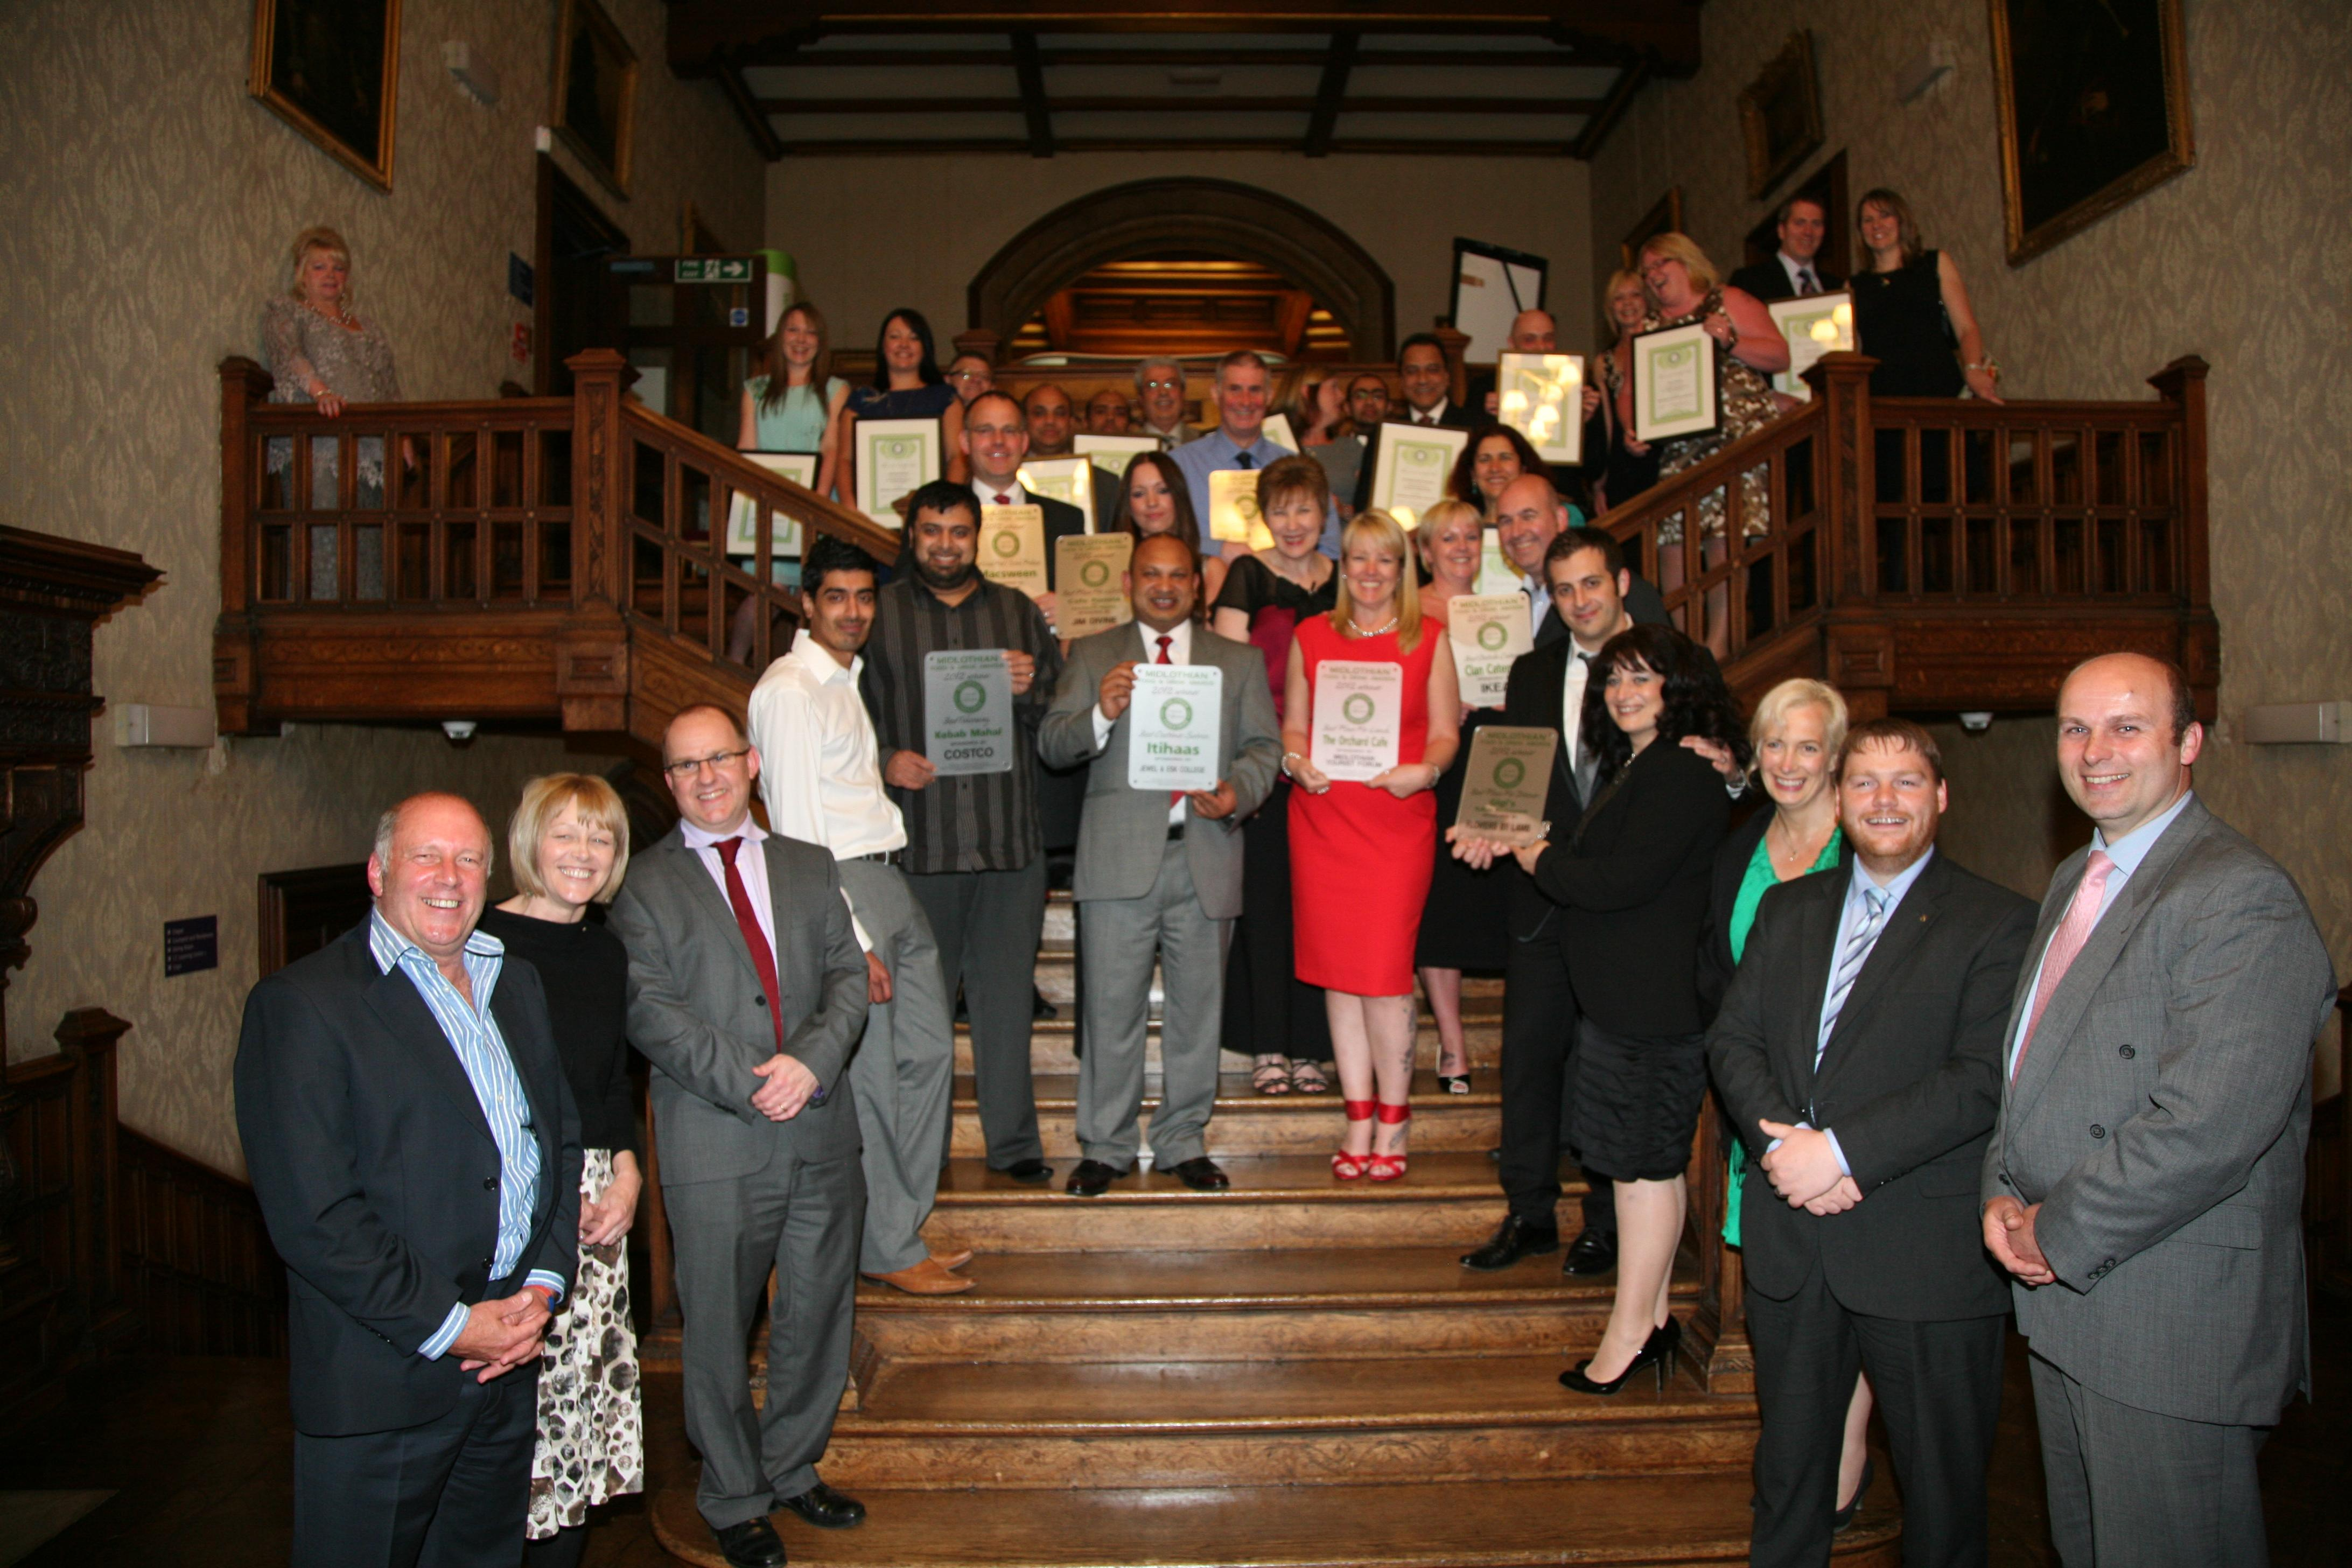 The Winners and Runners-Up of the Midlothian Food and Drink Awards 2012.